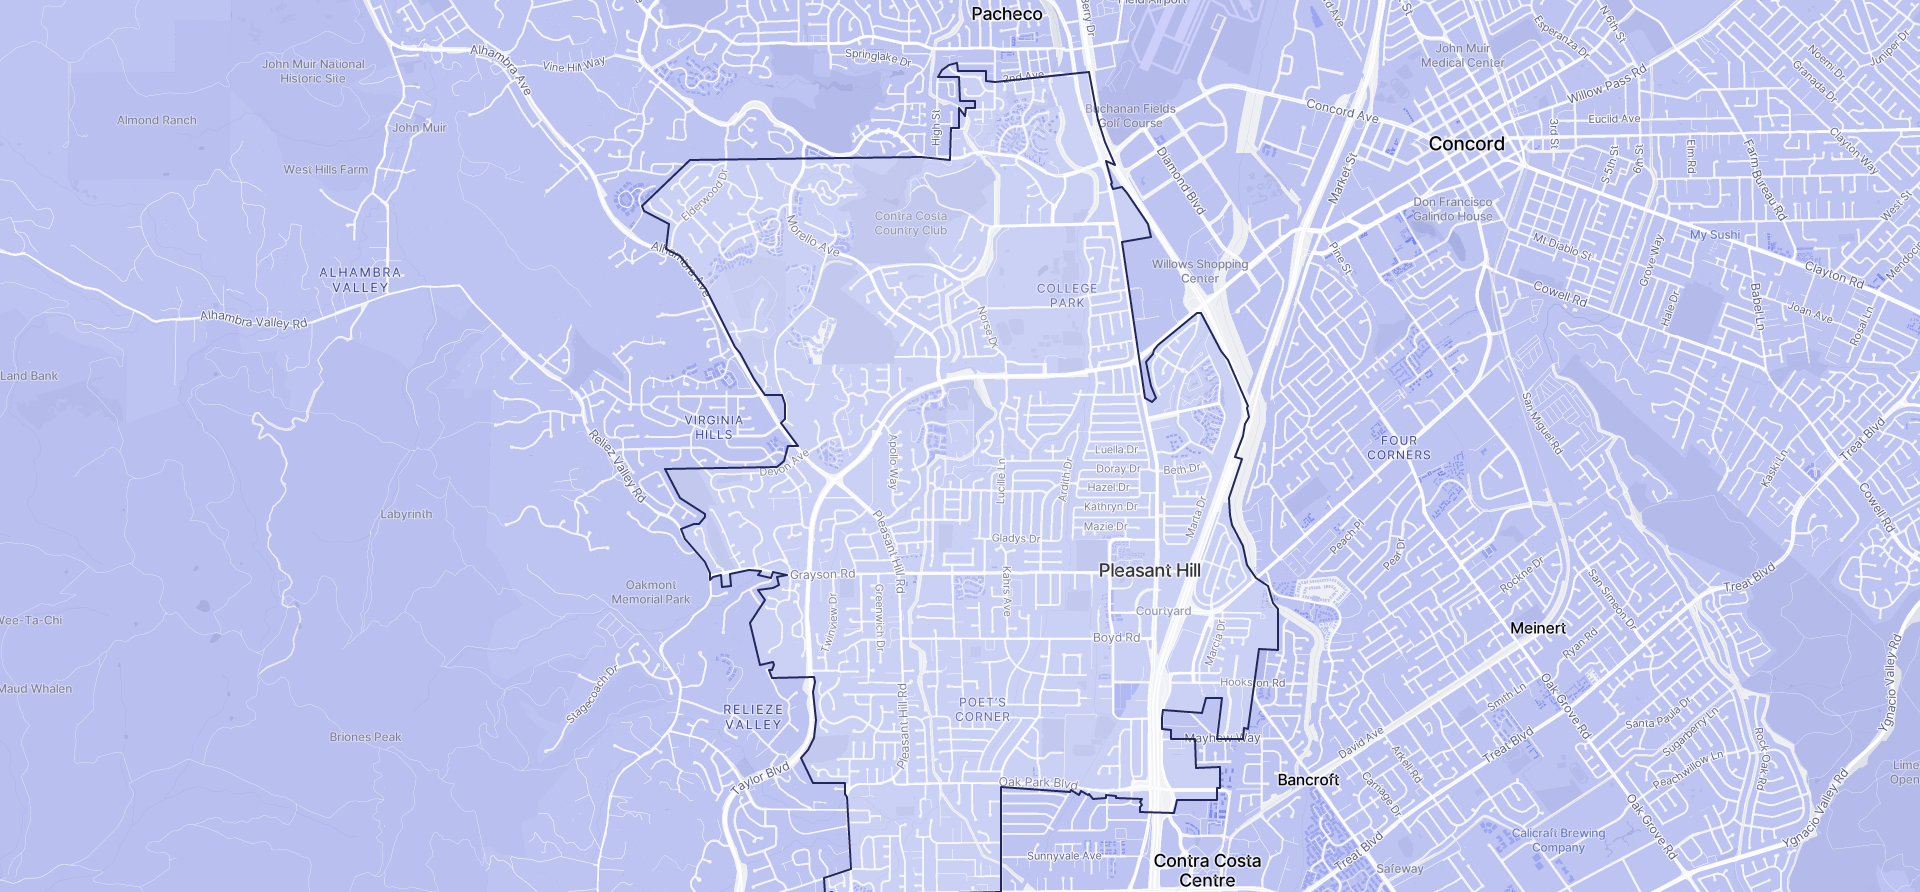 Image of Pleasant Hill boundaries on a map.